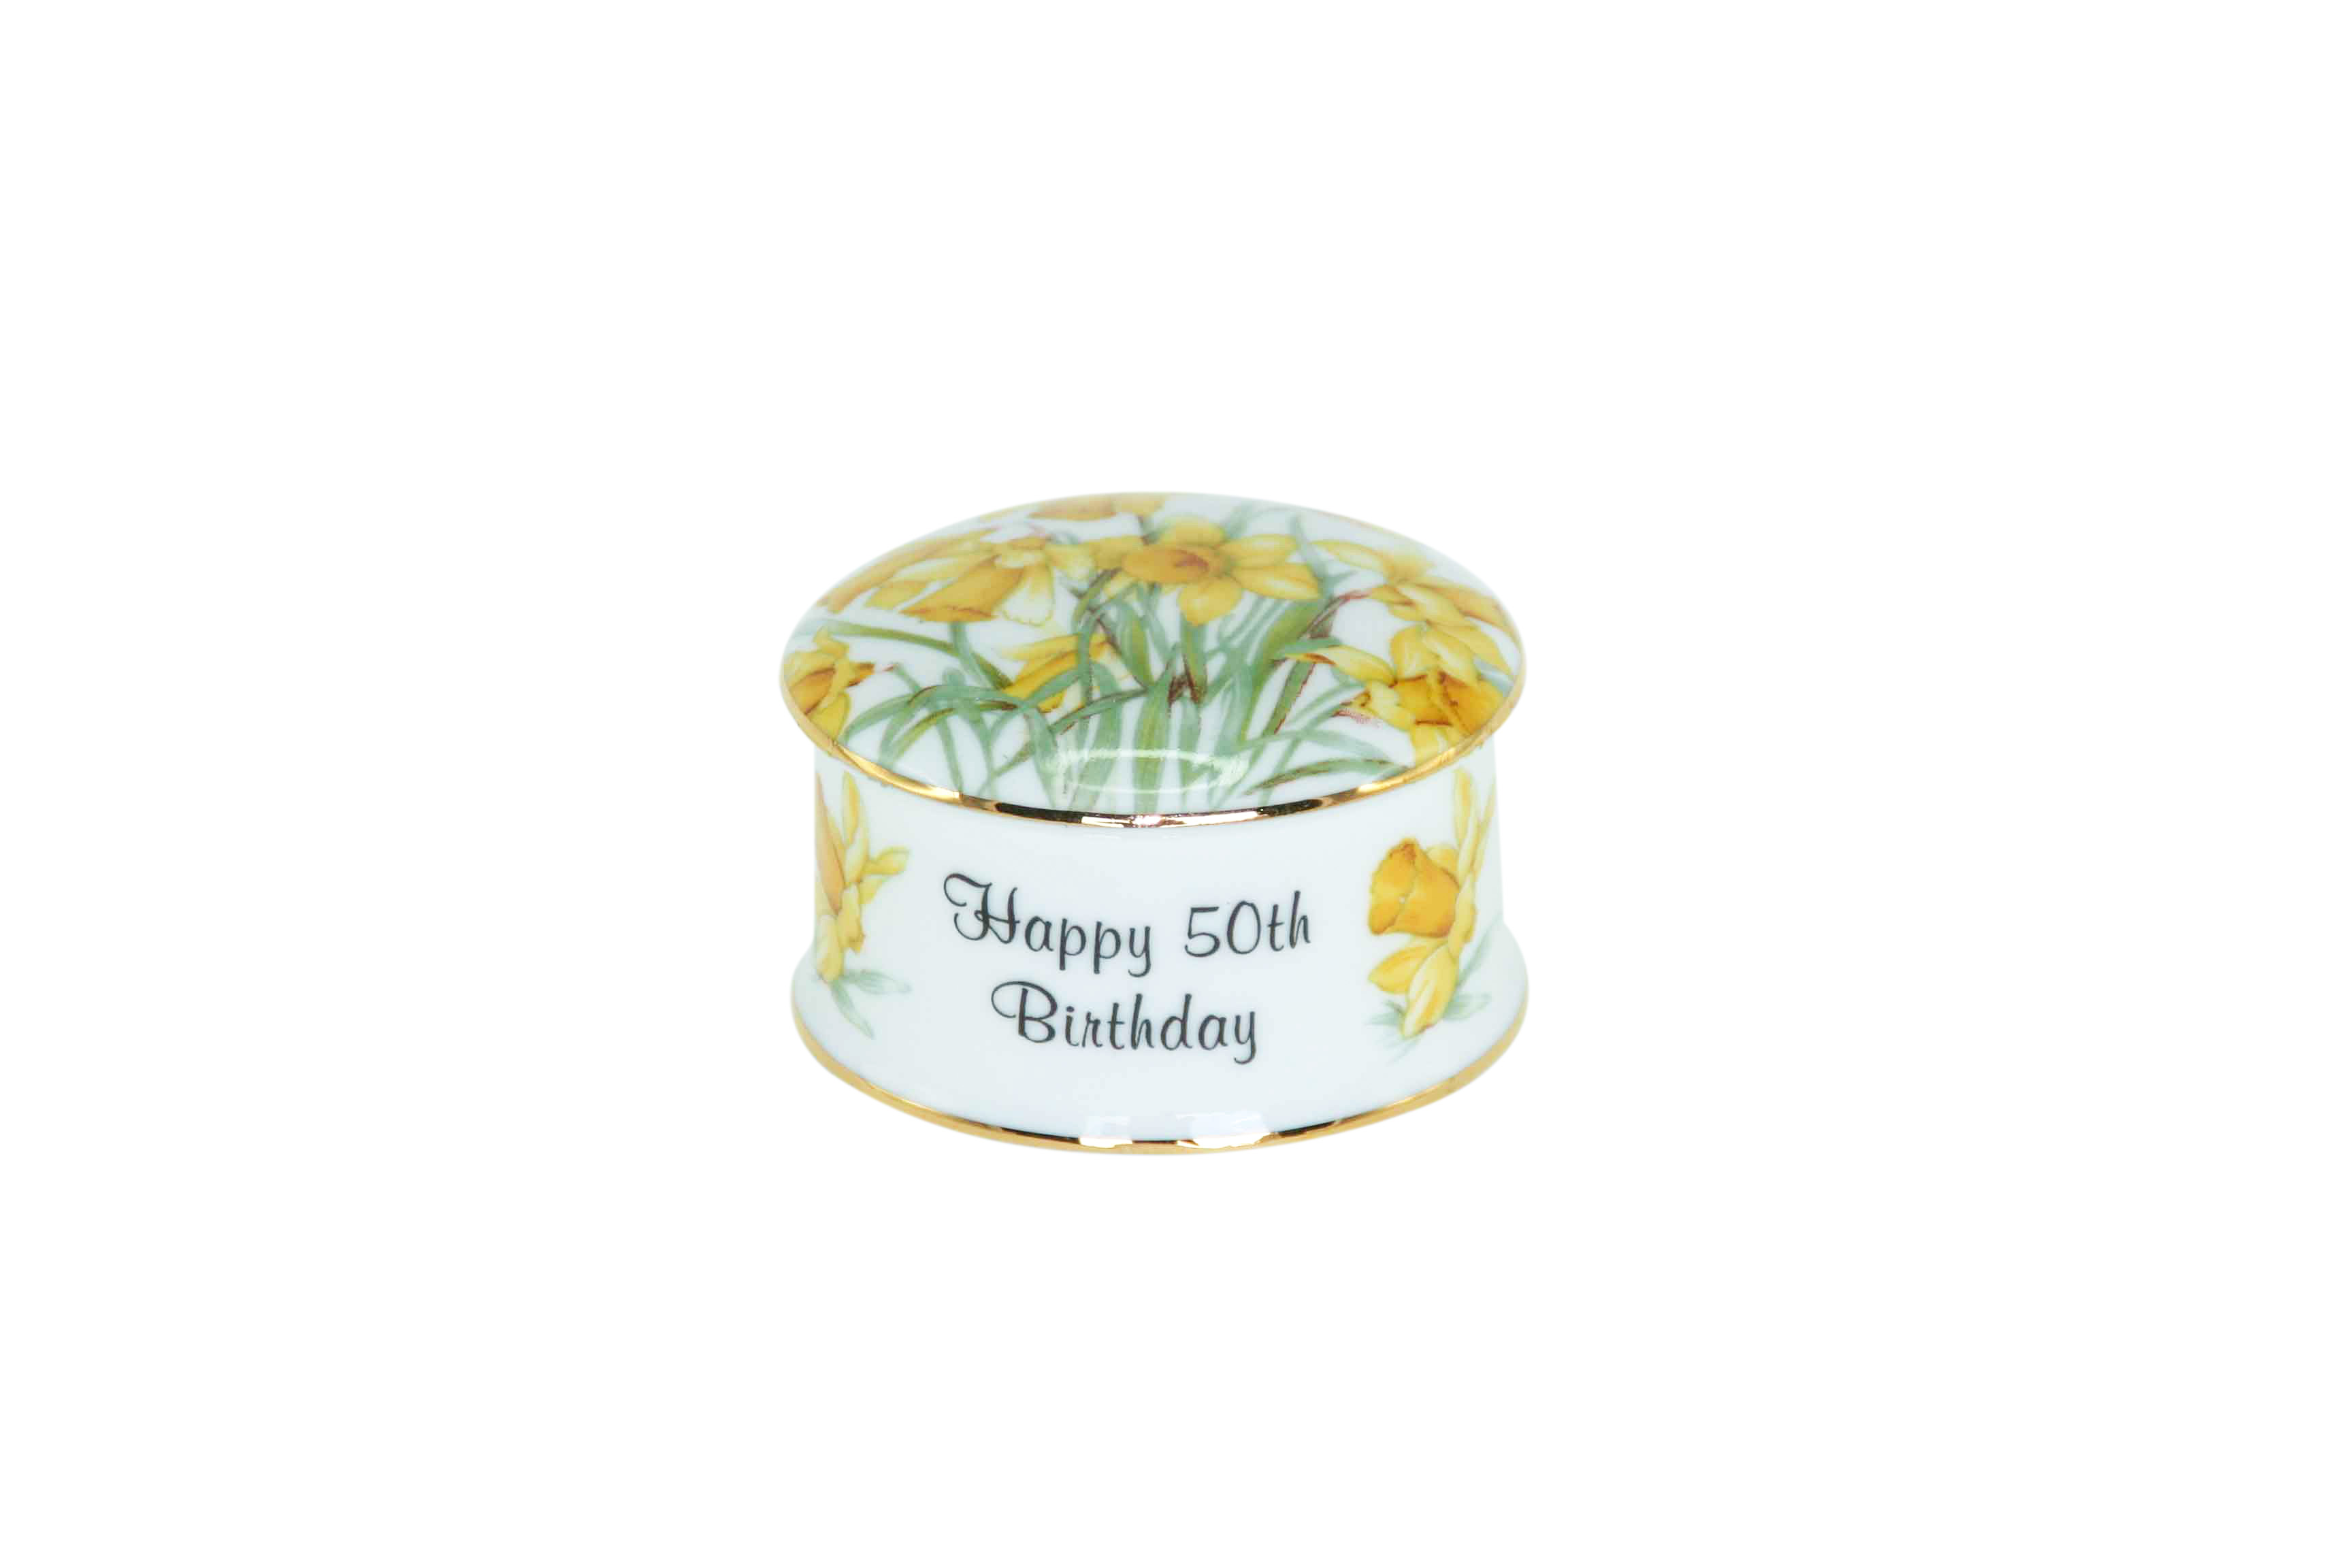 50th Birthday Trinket Box